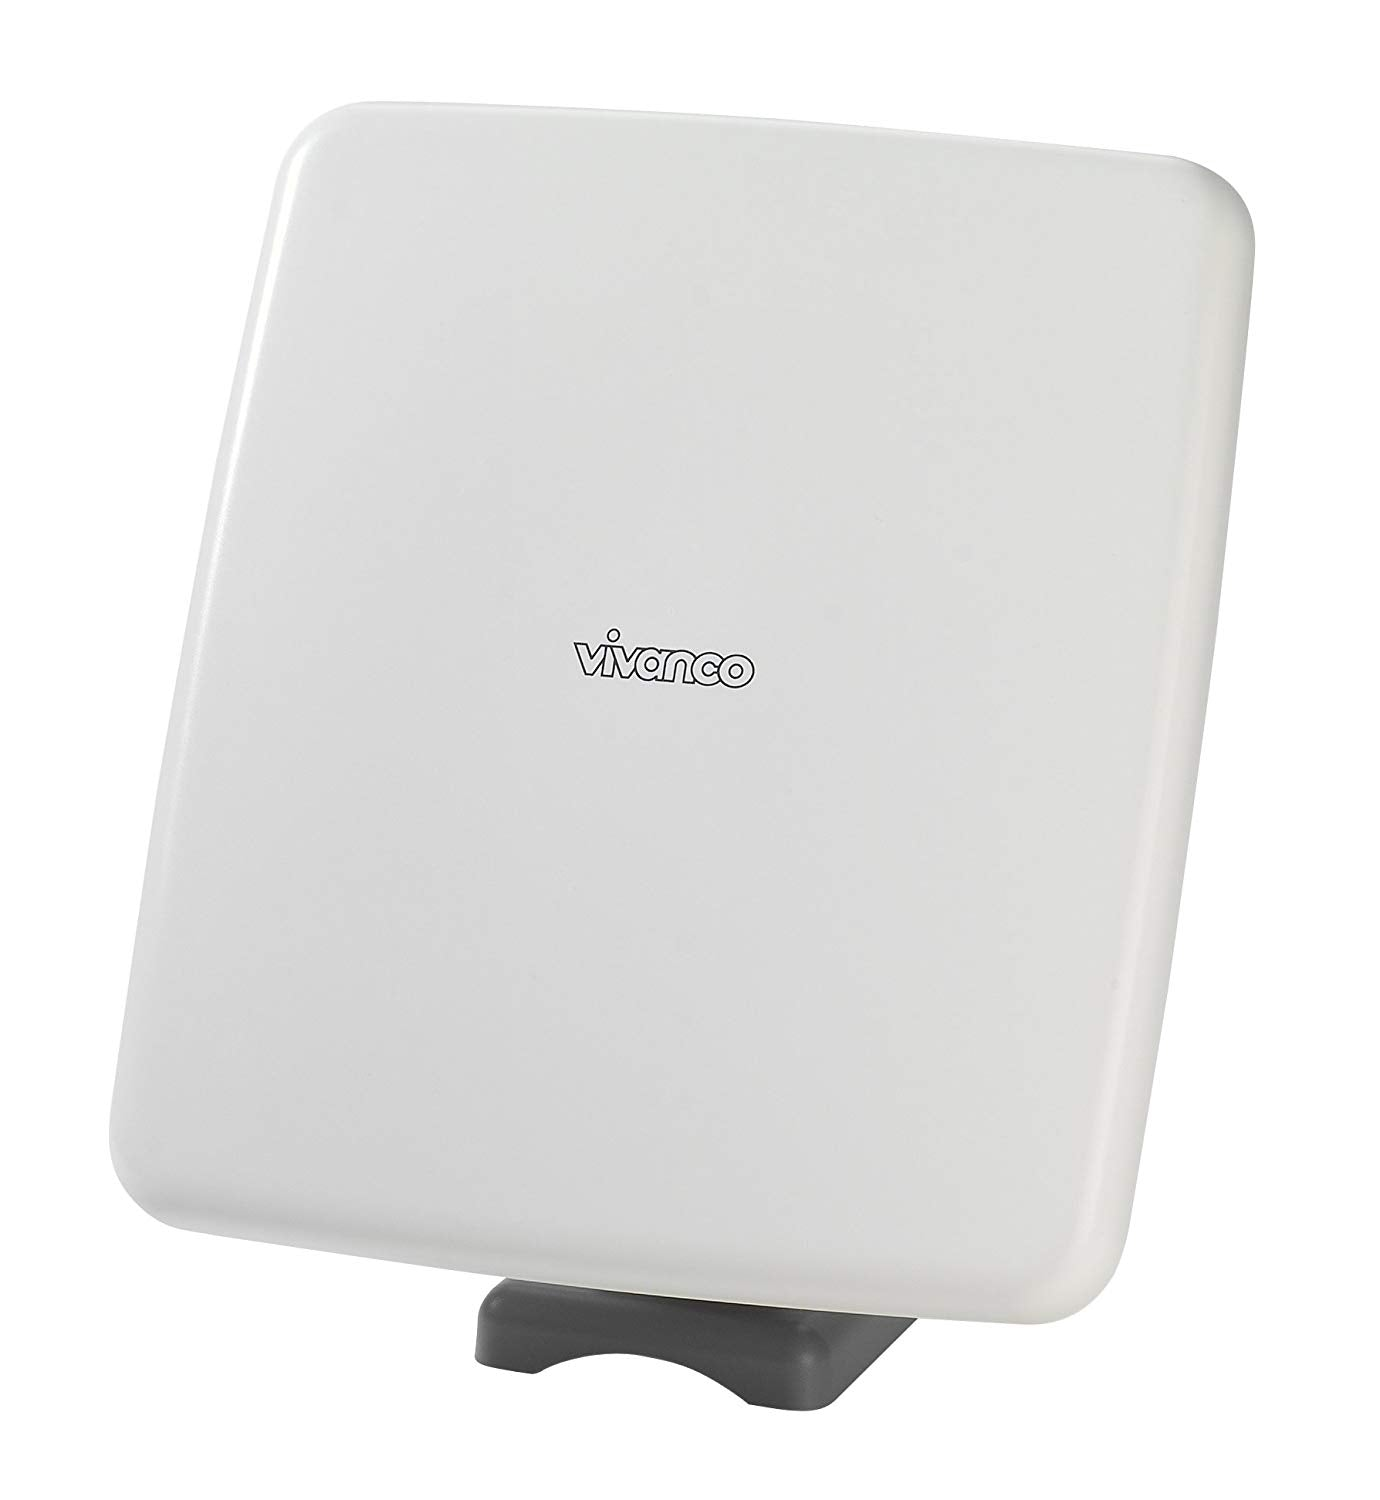 Vivanco Antenna for TV / radio